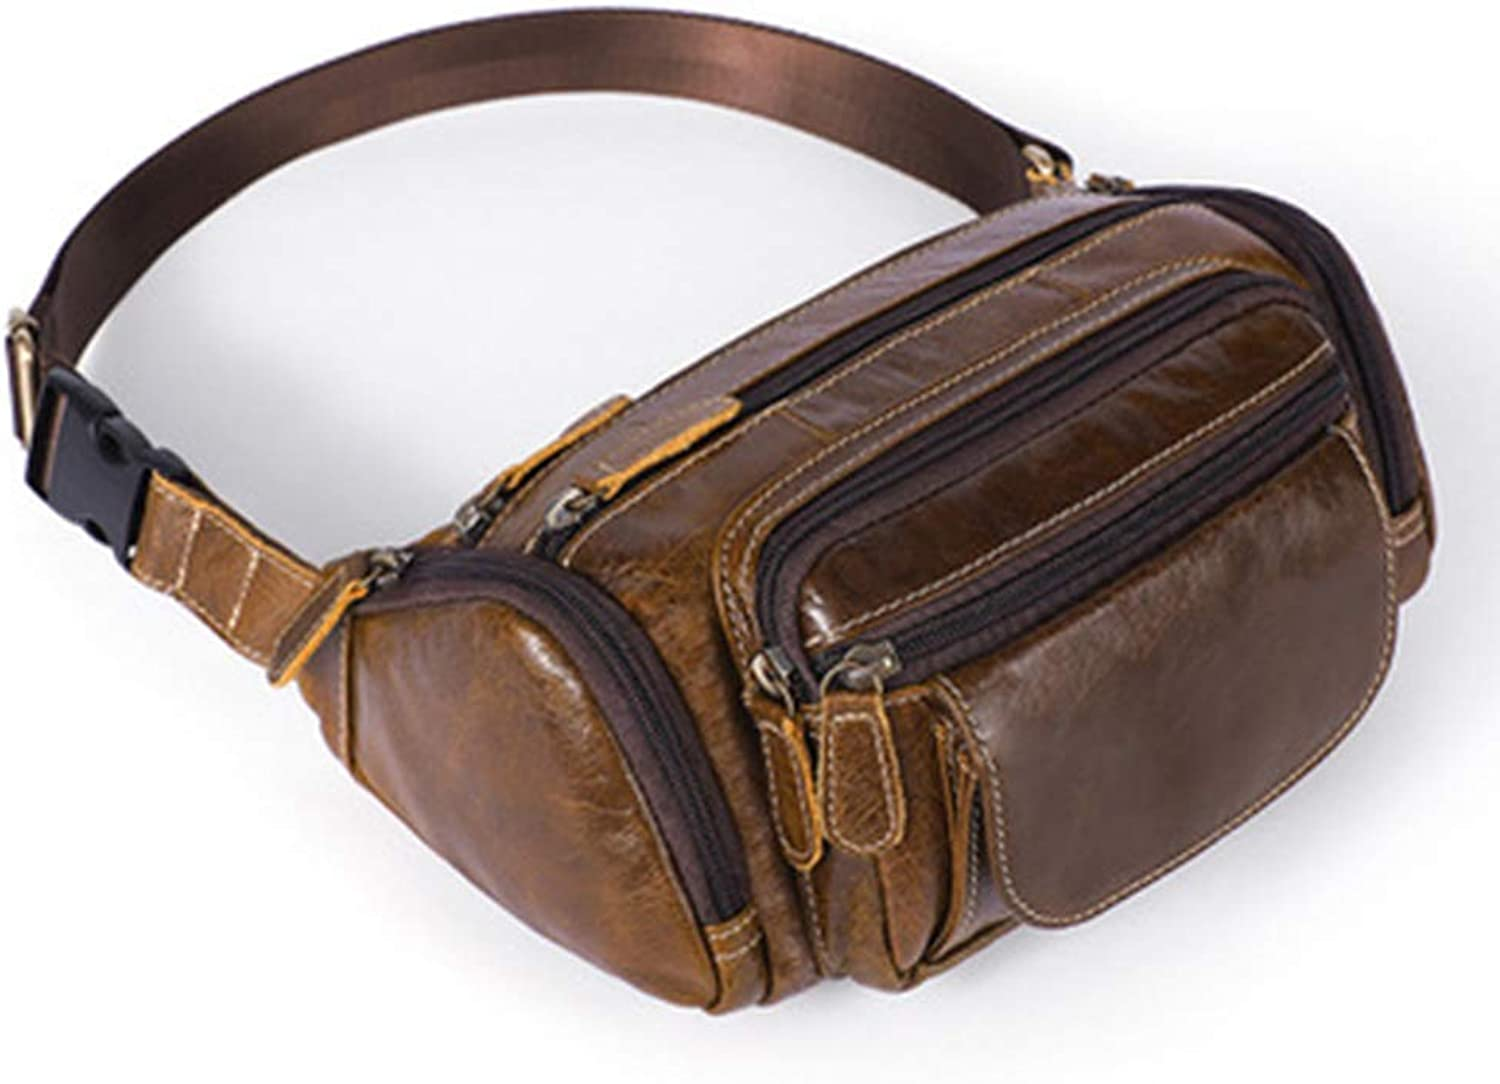 Multi Functional Waist Pack,Retro Large Capacity Outdoor Waist Pack First Layer Cowhide Men's Purse Crossbody Shoulder,oilcoffee